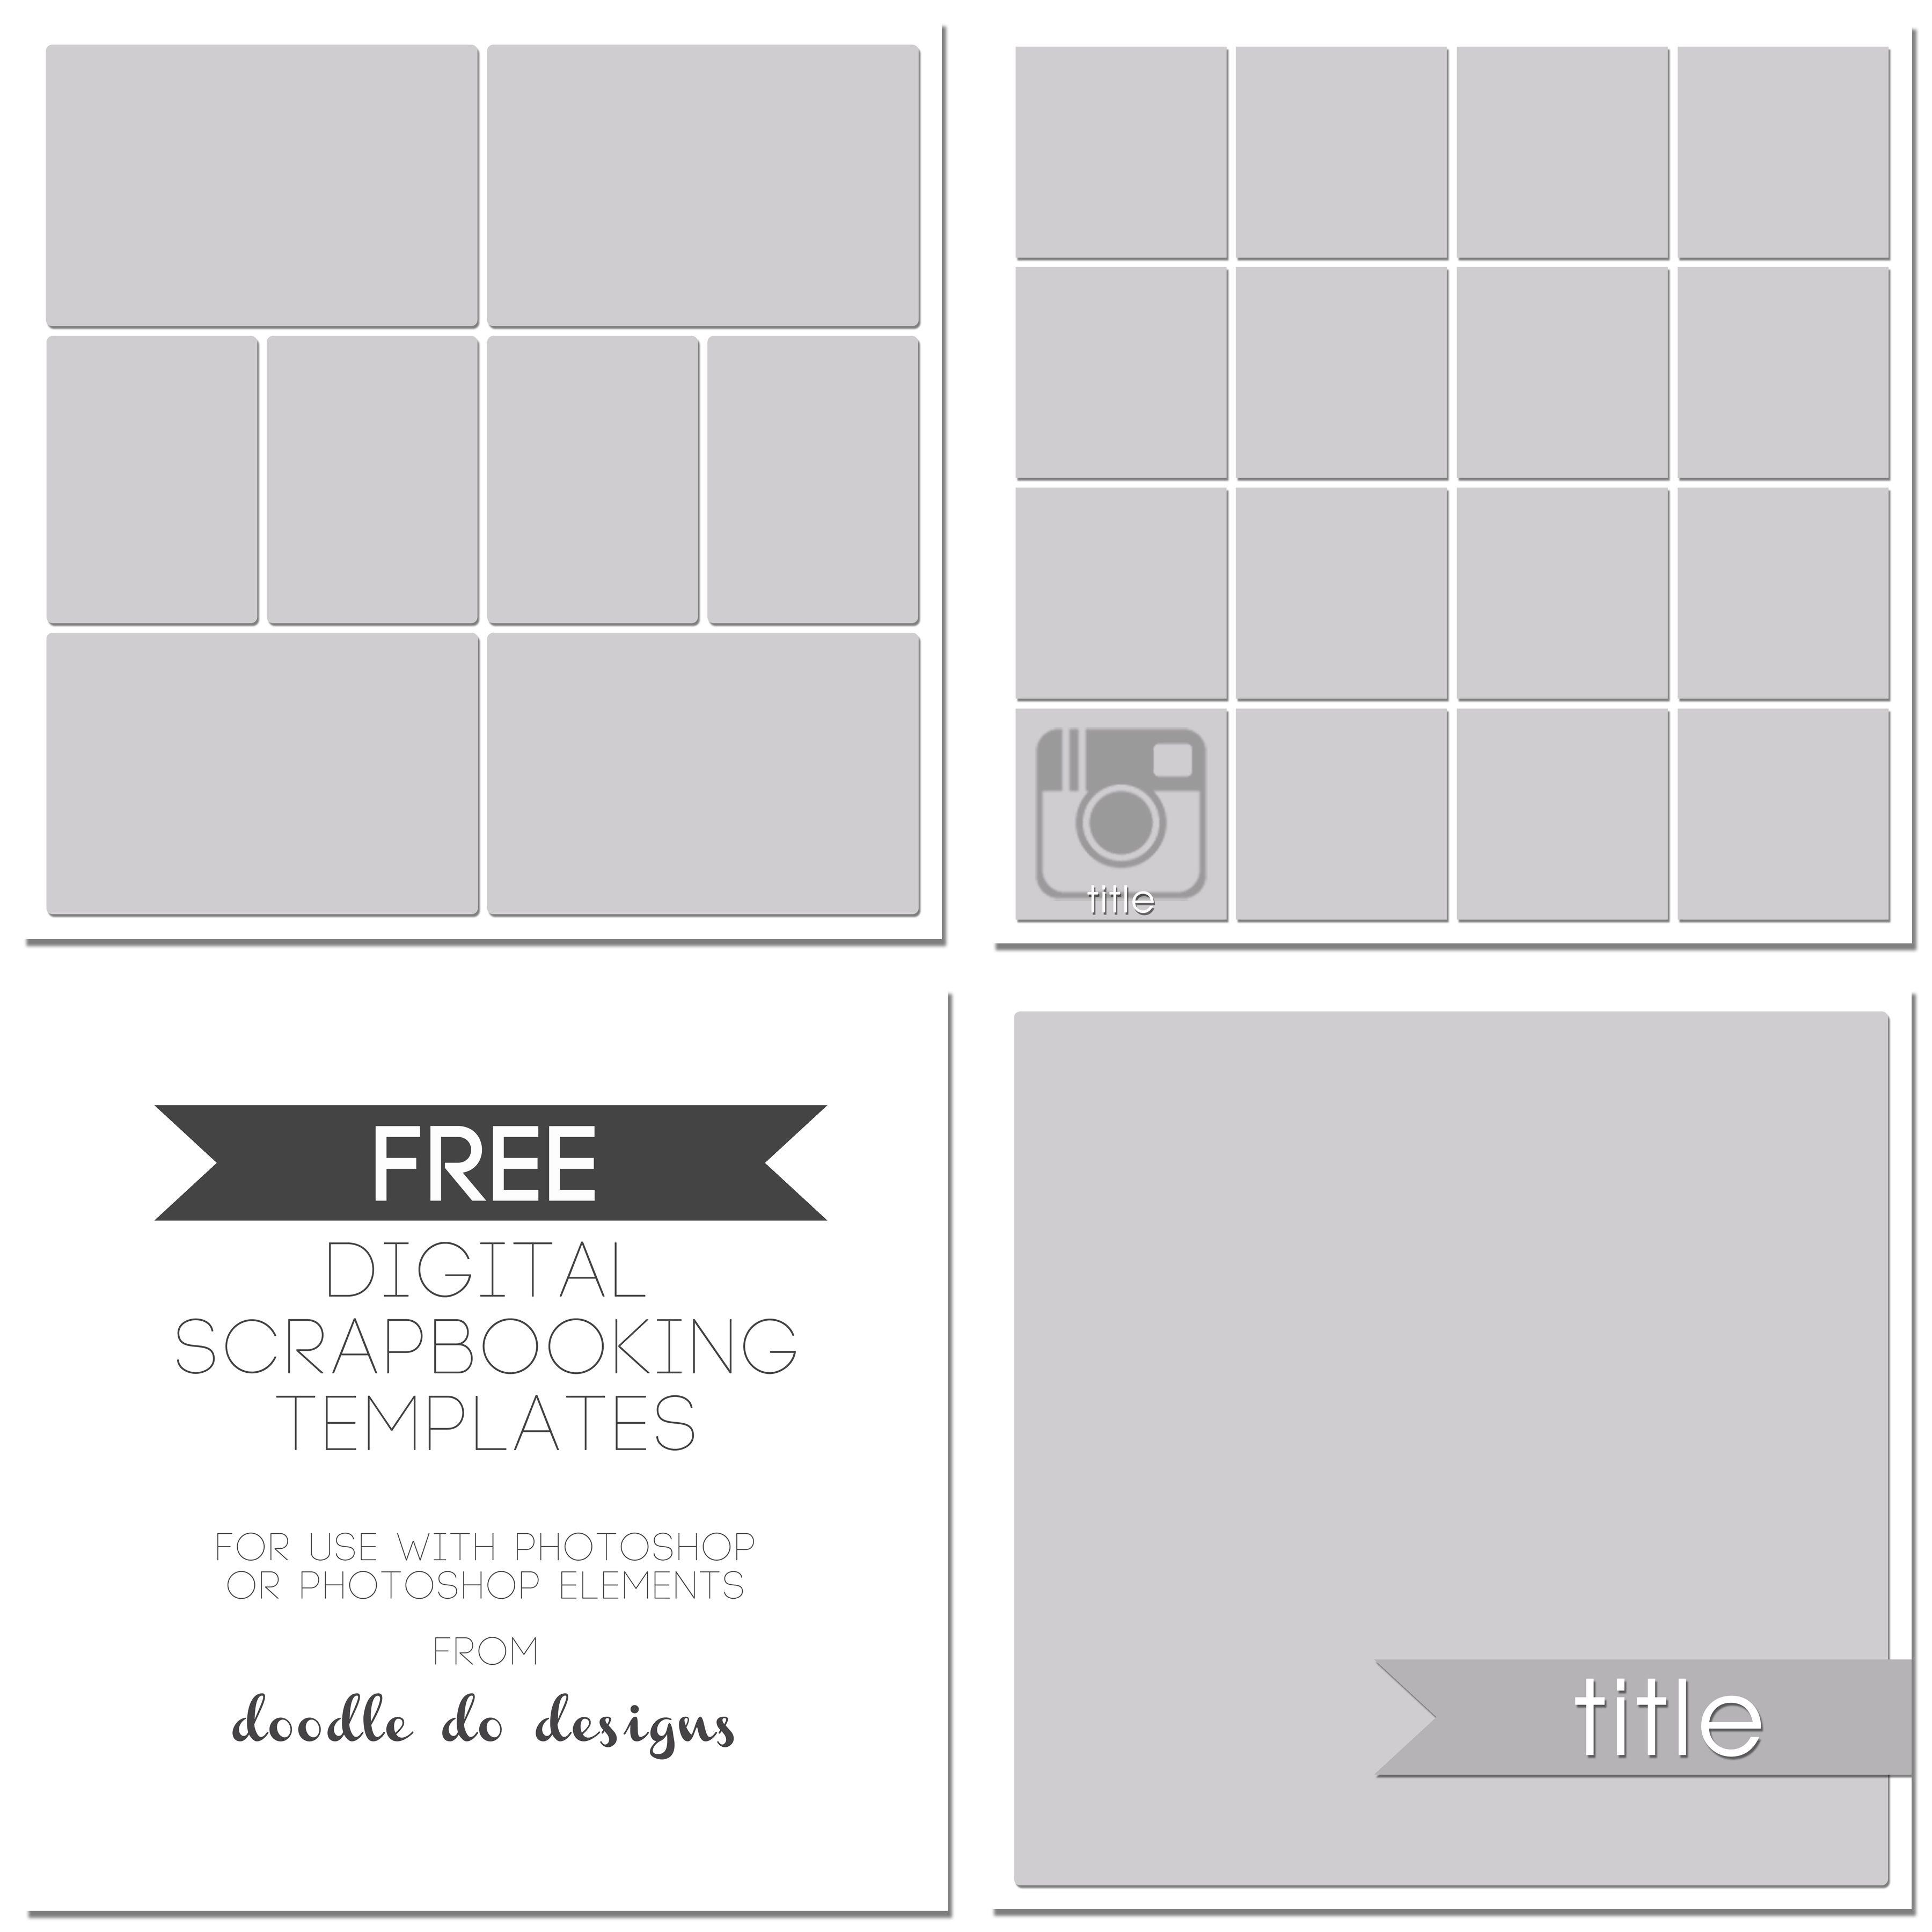 Free Digital Scrapbooking Templates